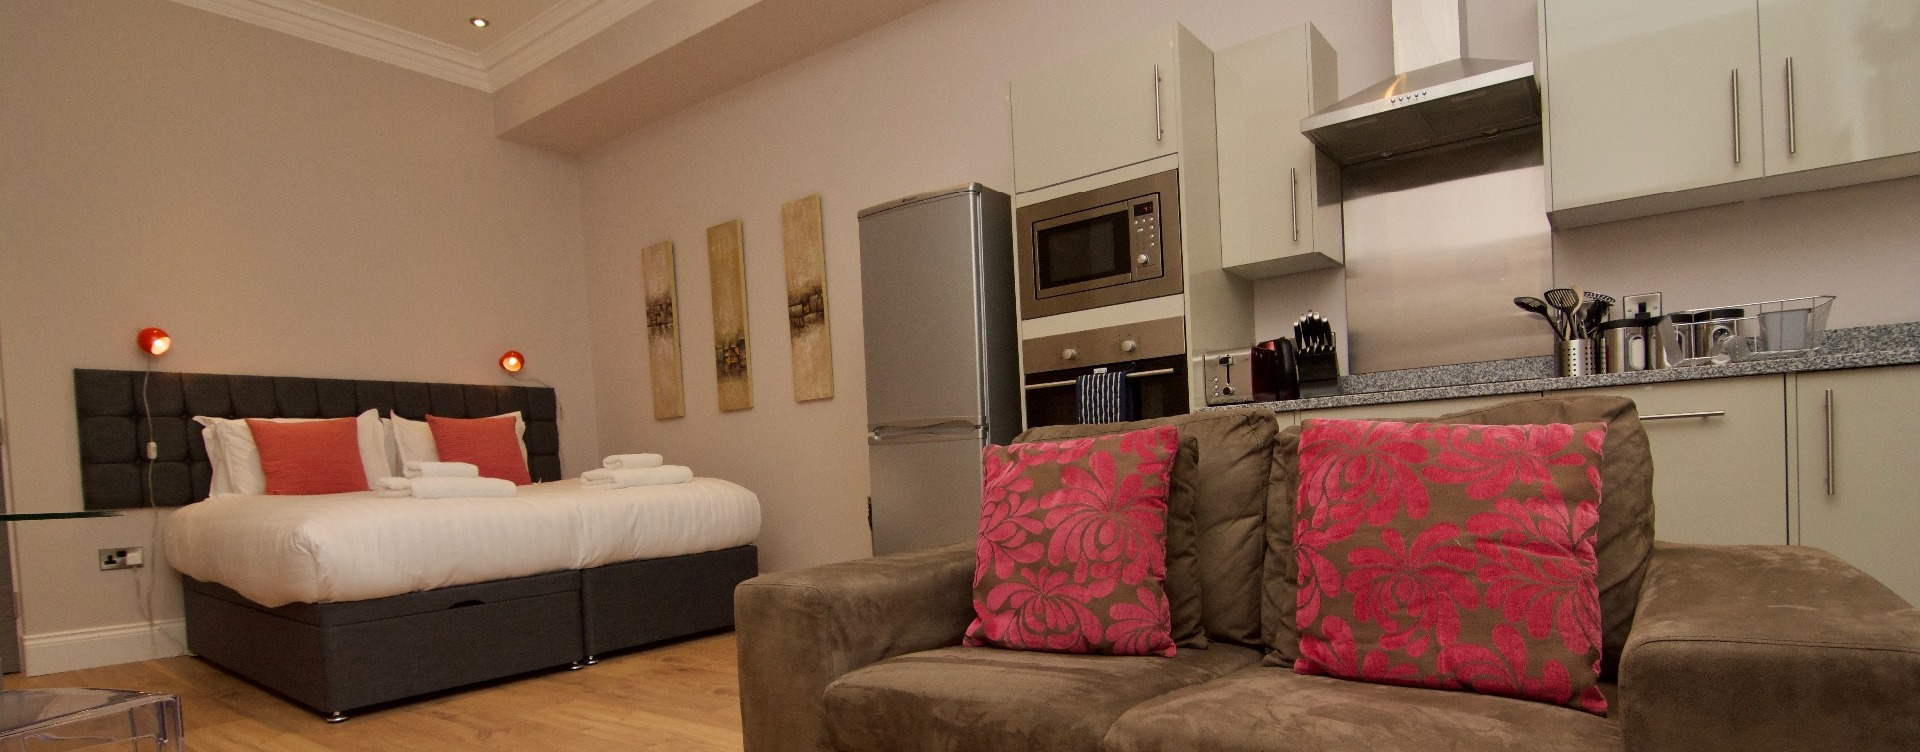 Harrogate Lifestyle offers stylish Studio one bathroom apartment for 1 or 2 people with double or twin bed set up facility. For Bookings Call now - 01423 568820